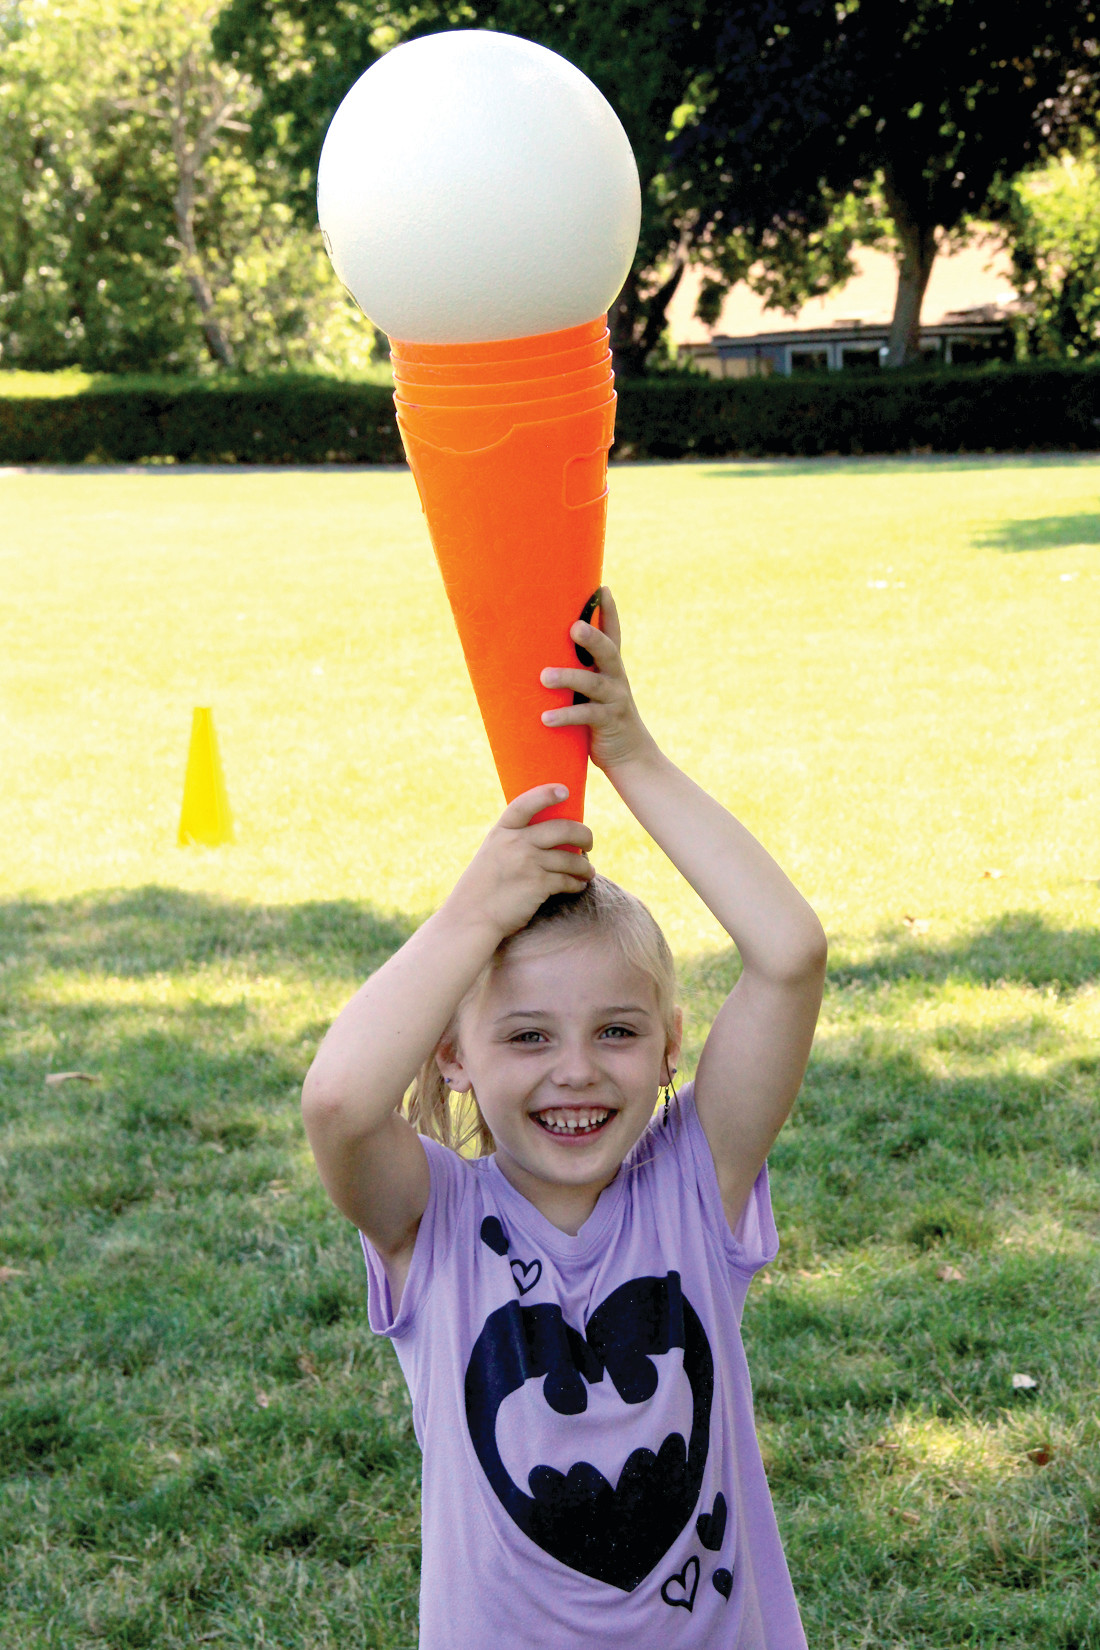 HEY, CONEHEAD: Camper, Madison Kinne smiles for the camera as she demonstrates her balancing ability.